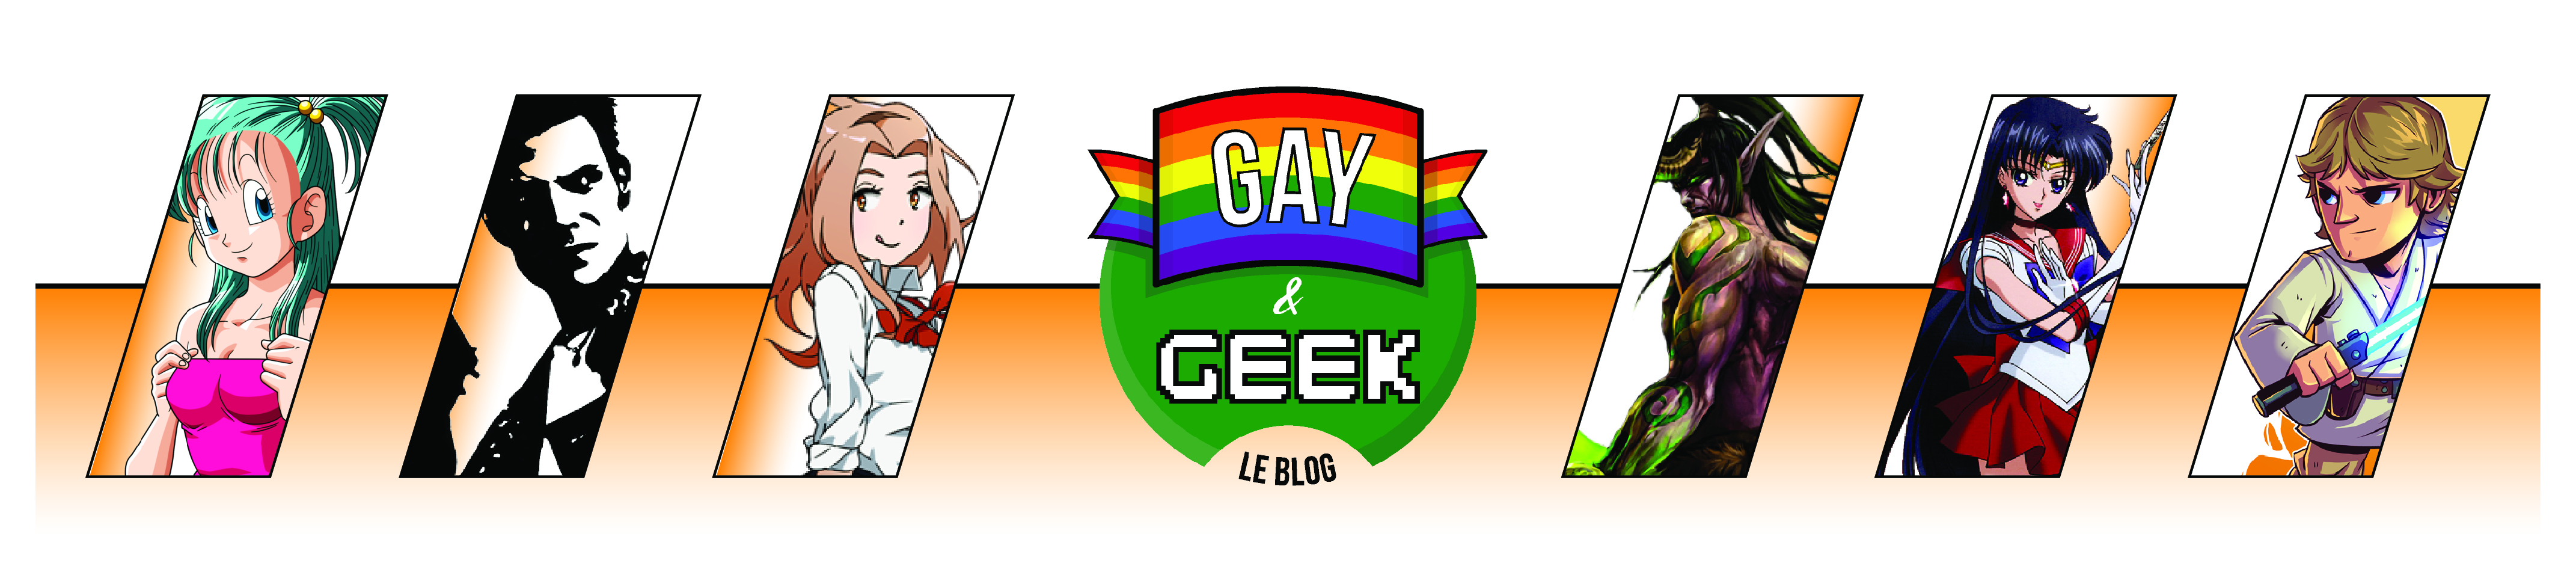 Gay and Geek